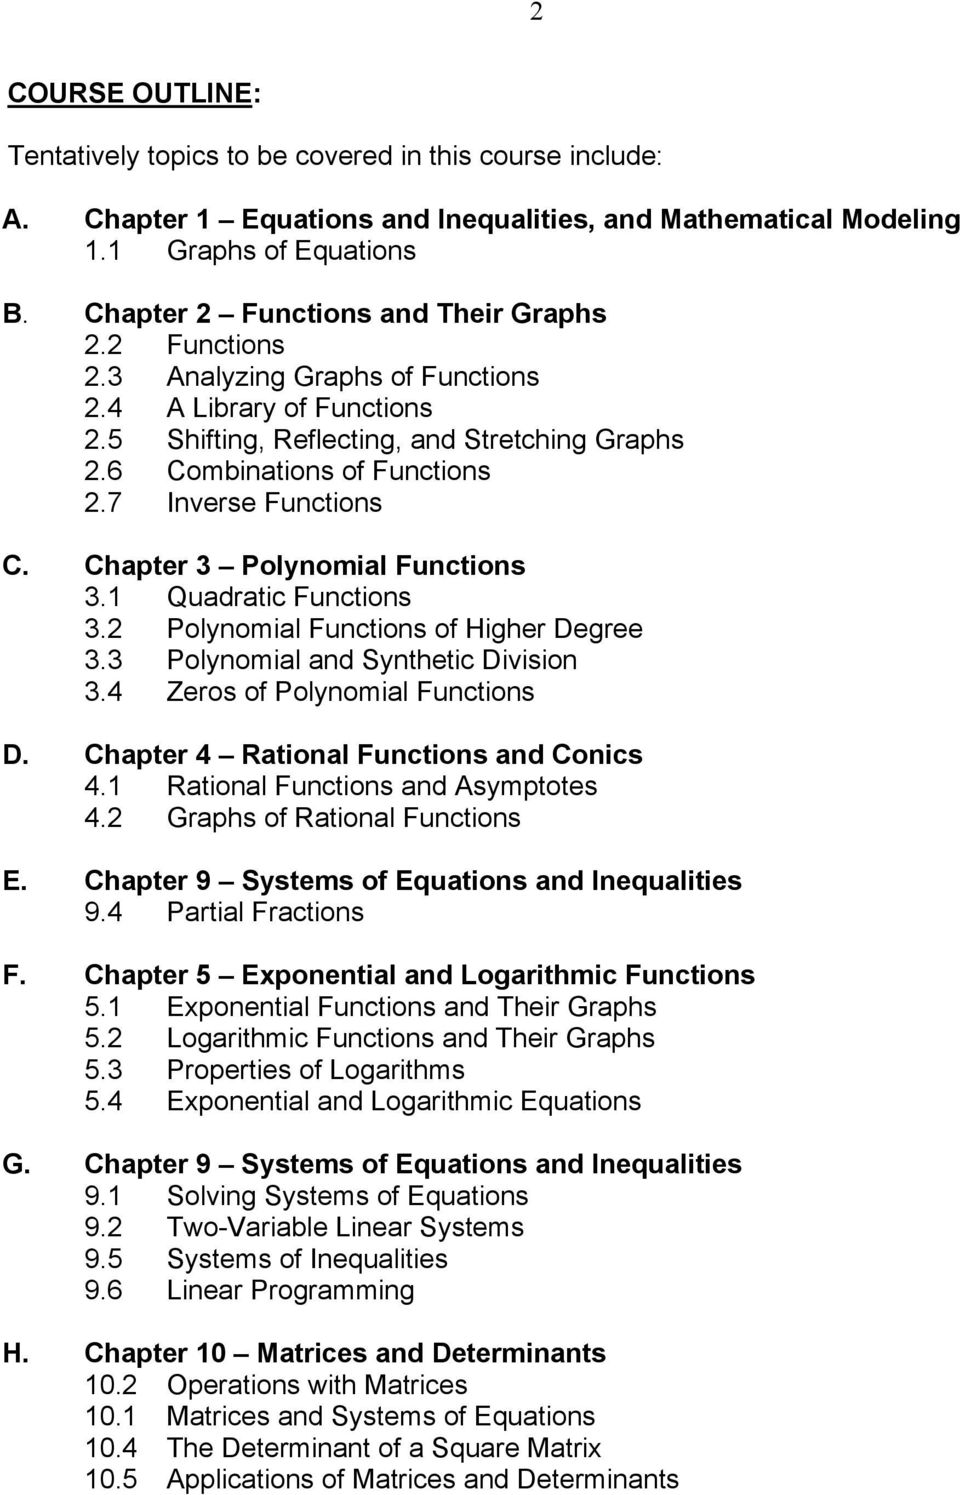 7 Inverse Functions C. Chapter 3 Polynomial Functions 3.1 Quadratic Functions 3.2 Polynomial Functions of Higher Degree 3.3 Polynomial and Synthetic Division 3.4 Zeros of Polynomial Functions D.